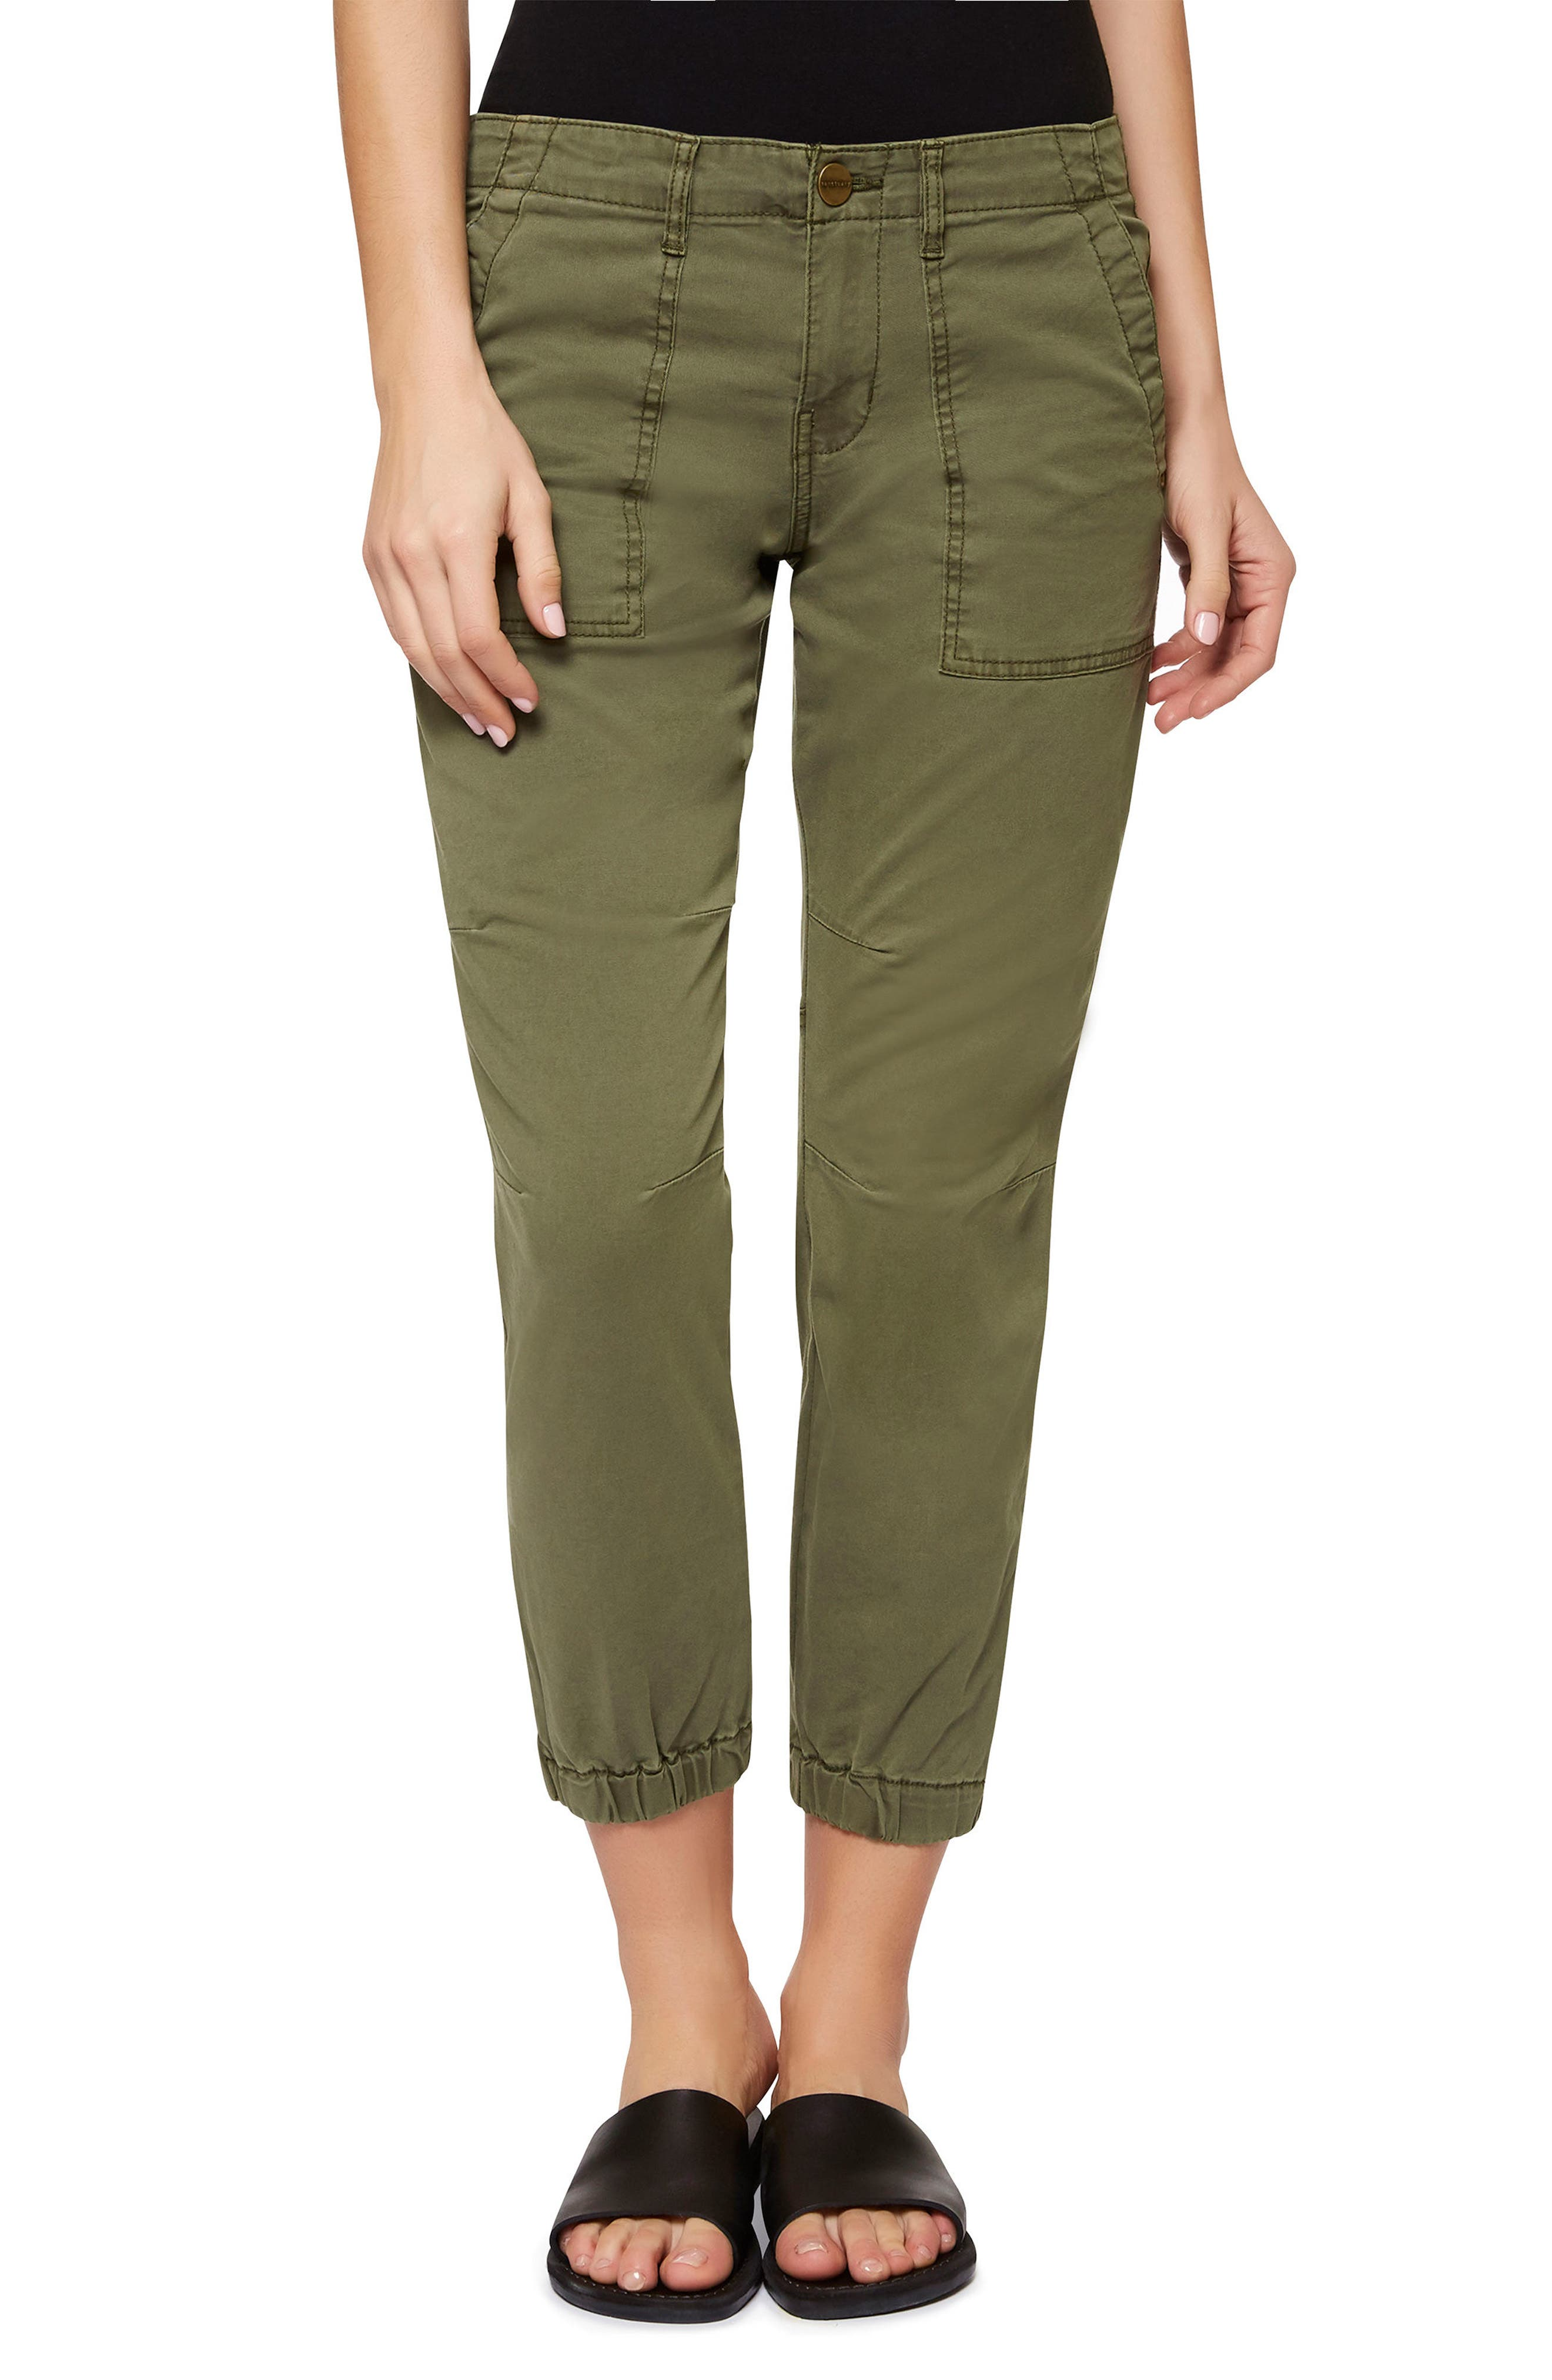 Alternate Image 1 Selected - Sanctuary 'Peace Trooper' Crop Cargo Pants (Regular & Petite)